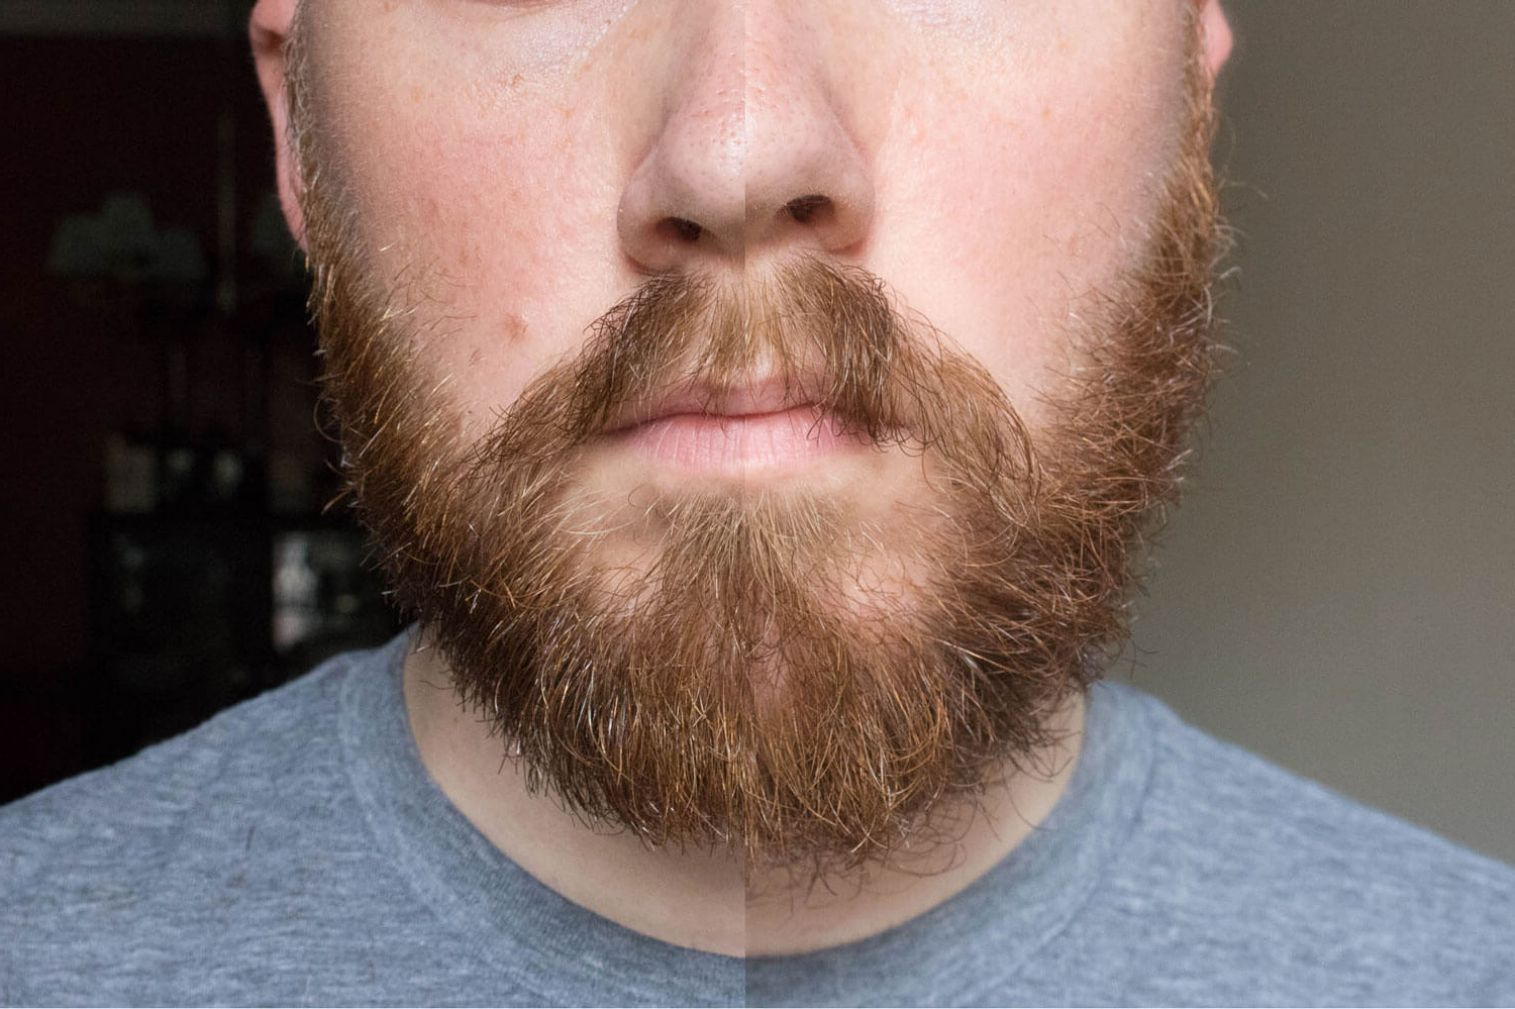 Outstanding How To Trim A Beard Neckline Best Obtain Modern Men Hairstyle How To Trim A Beard Neckline